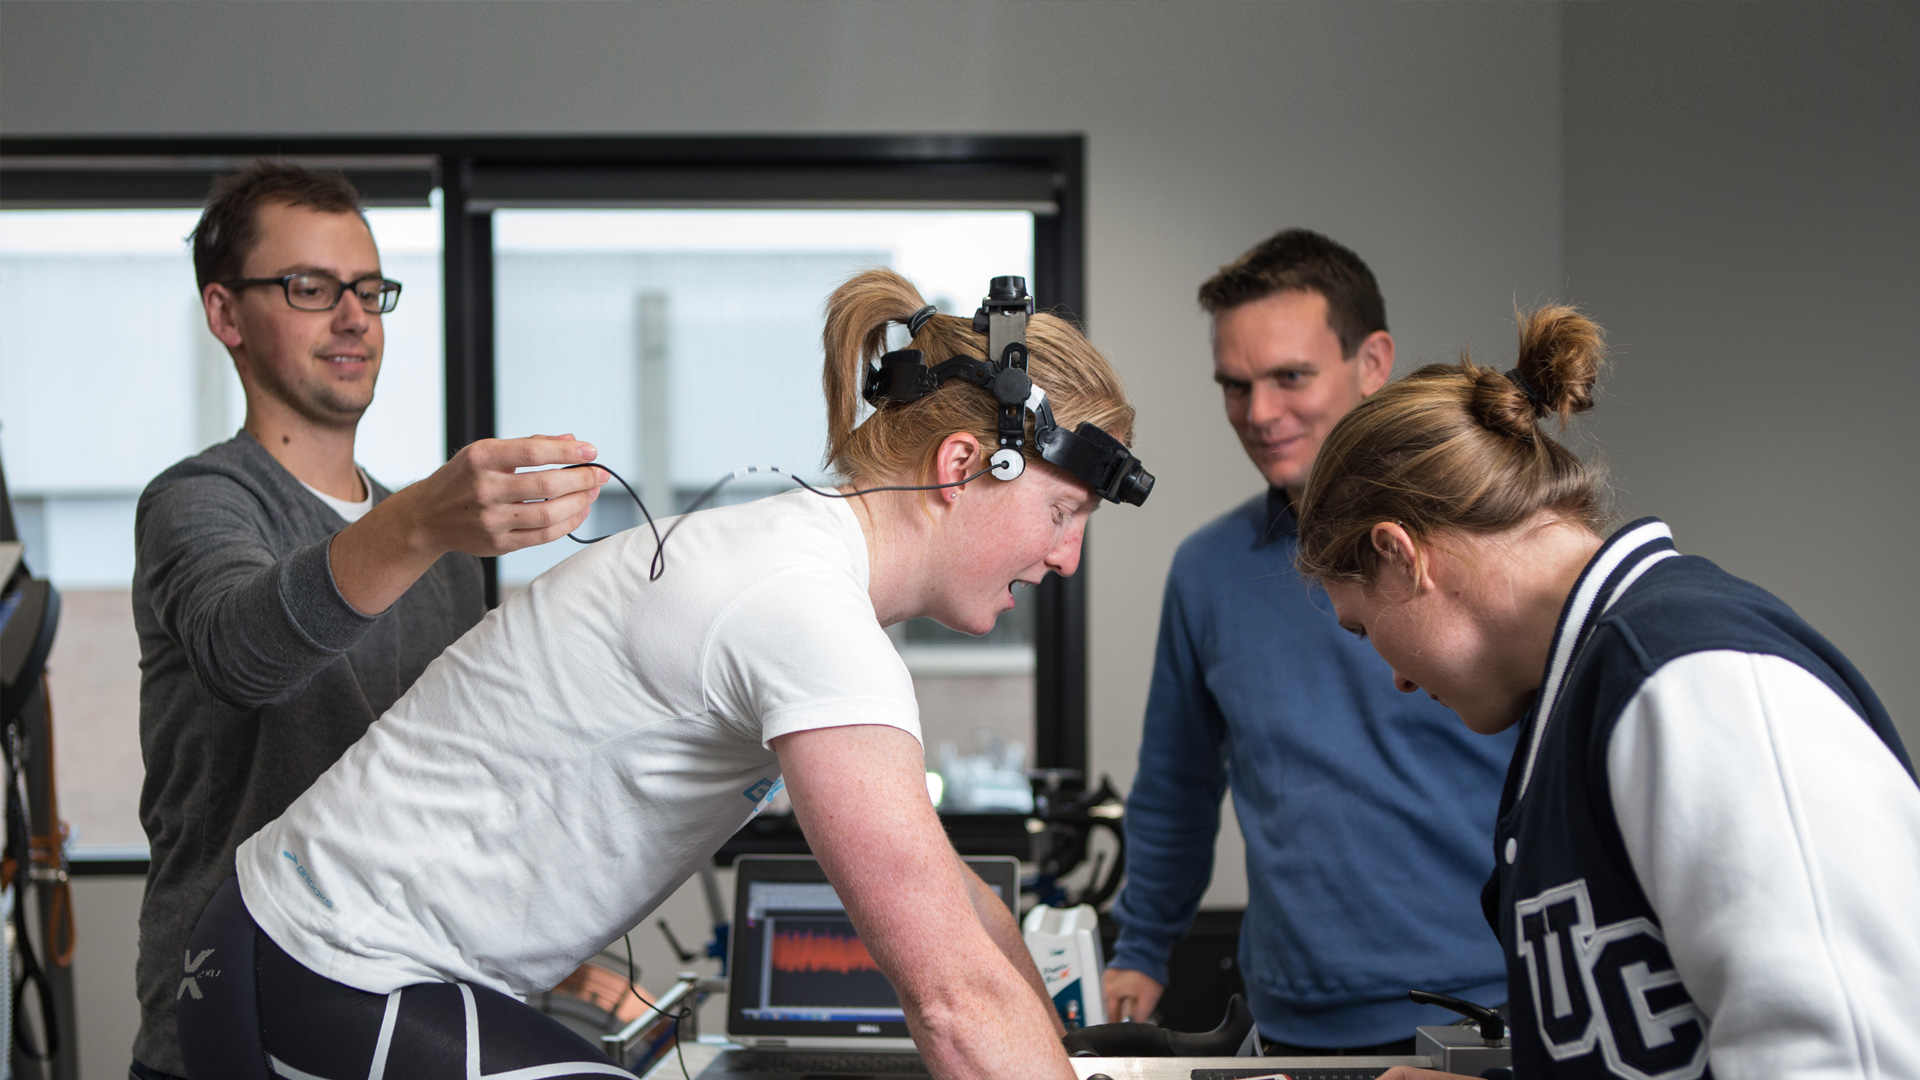 Photo of students working with athlete on static exercise bicycle